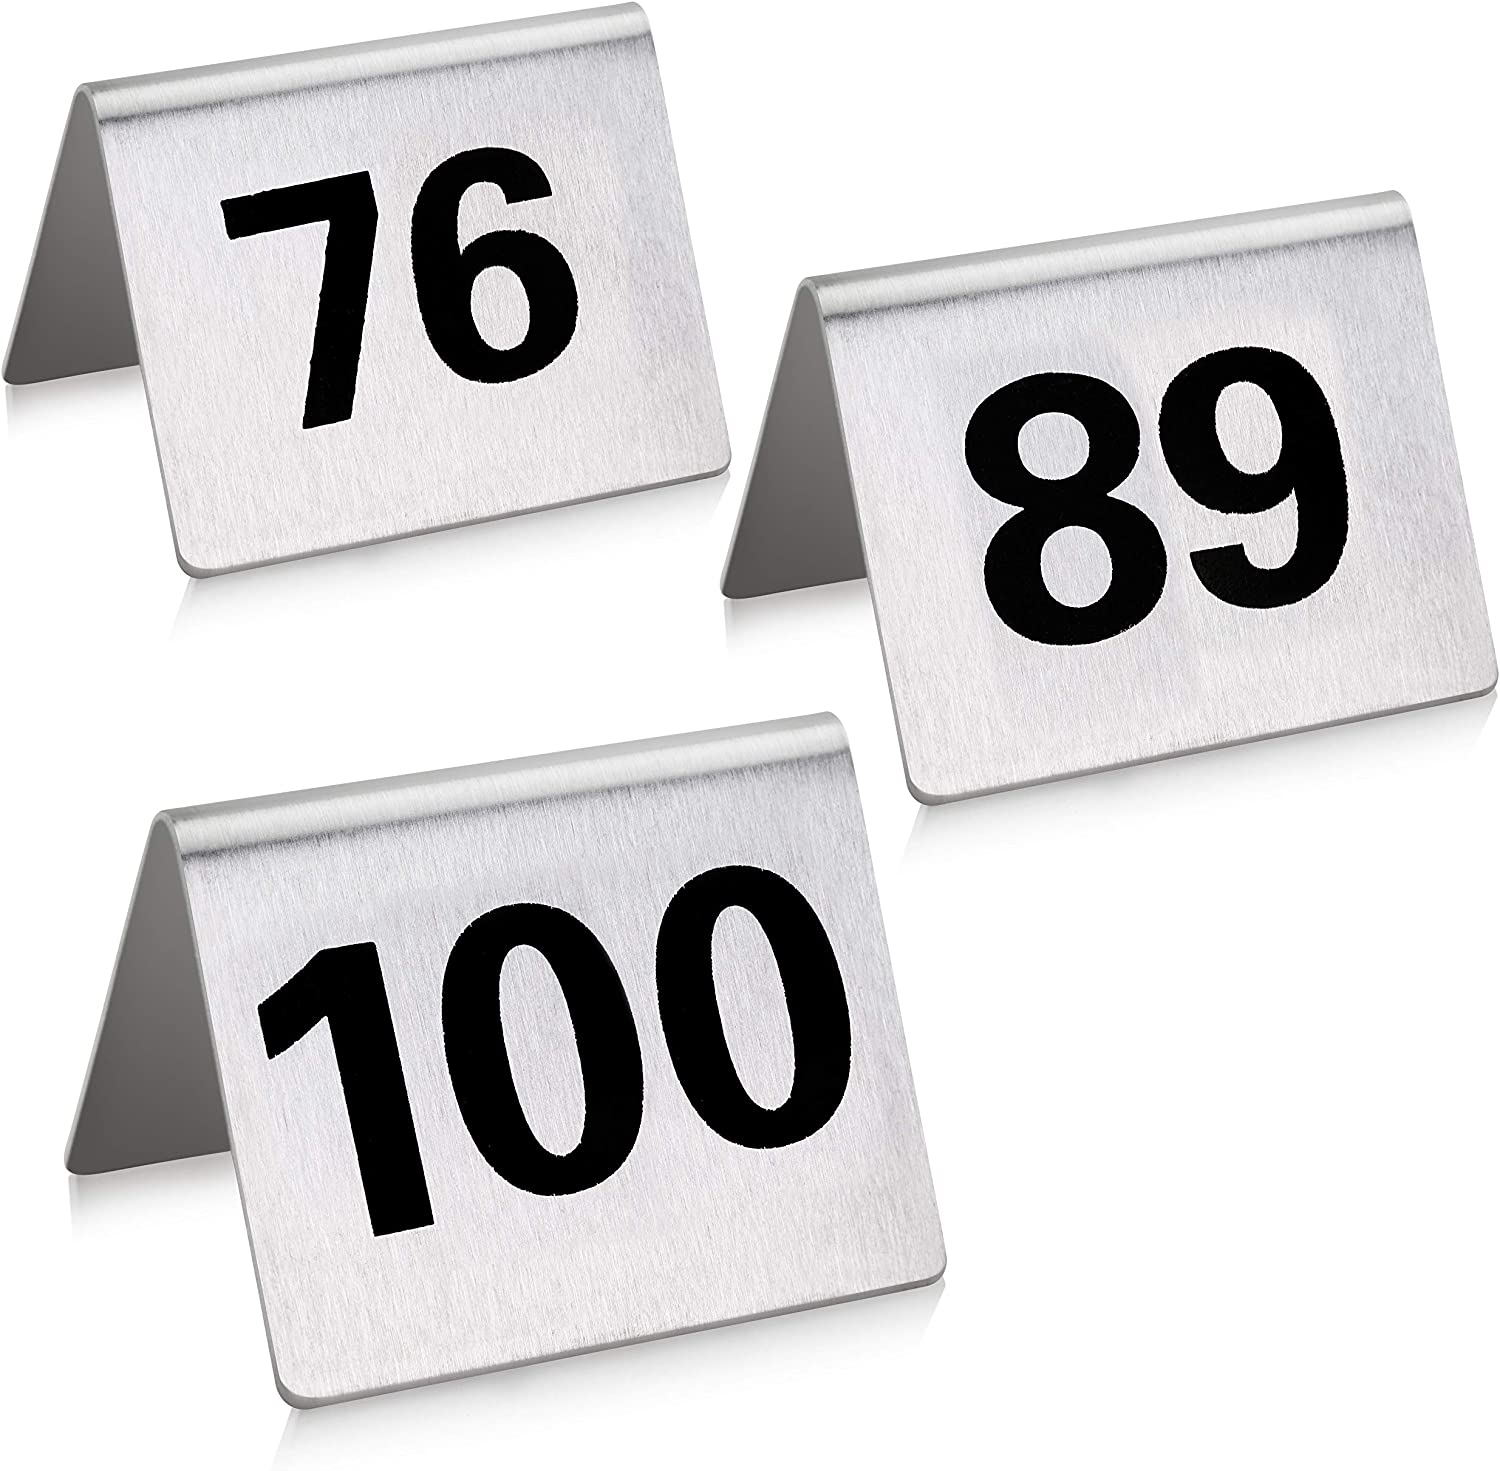 New Star Foodservice 27655 Stainless Steel Tent Style Table Number Card, 76-100, 1.5